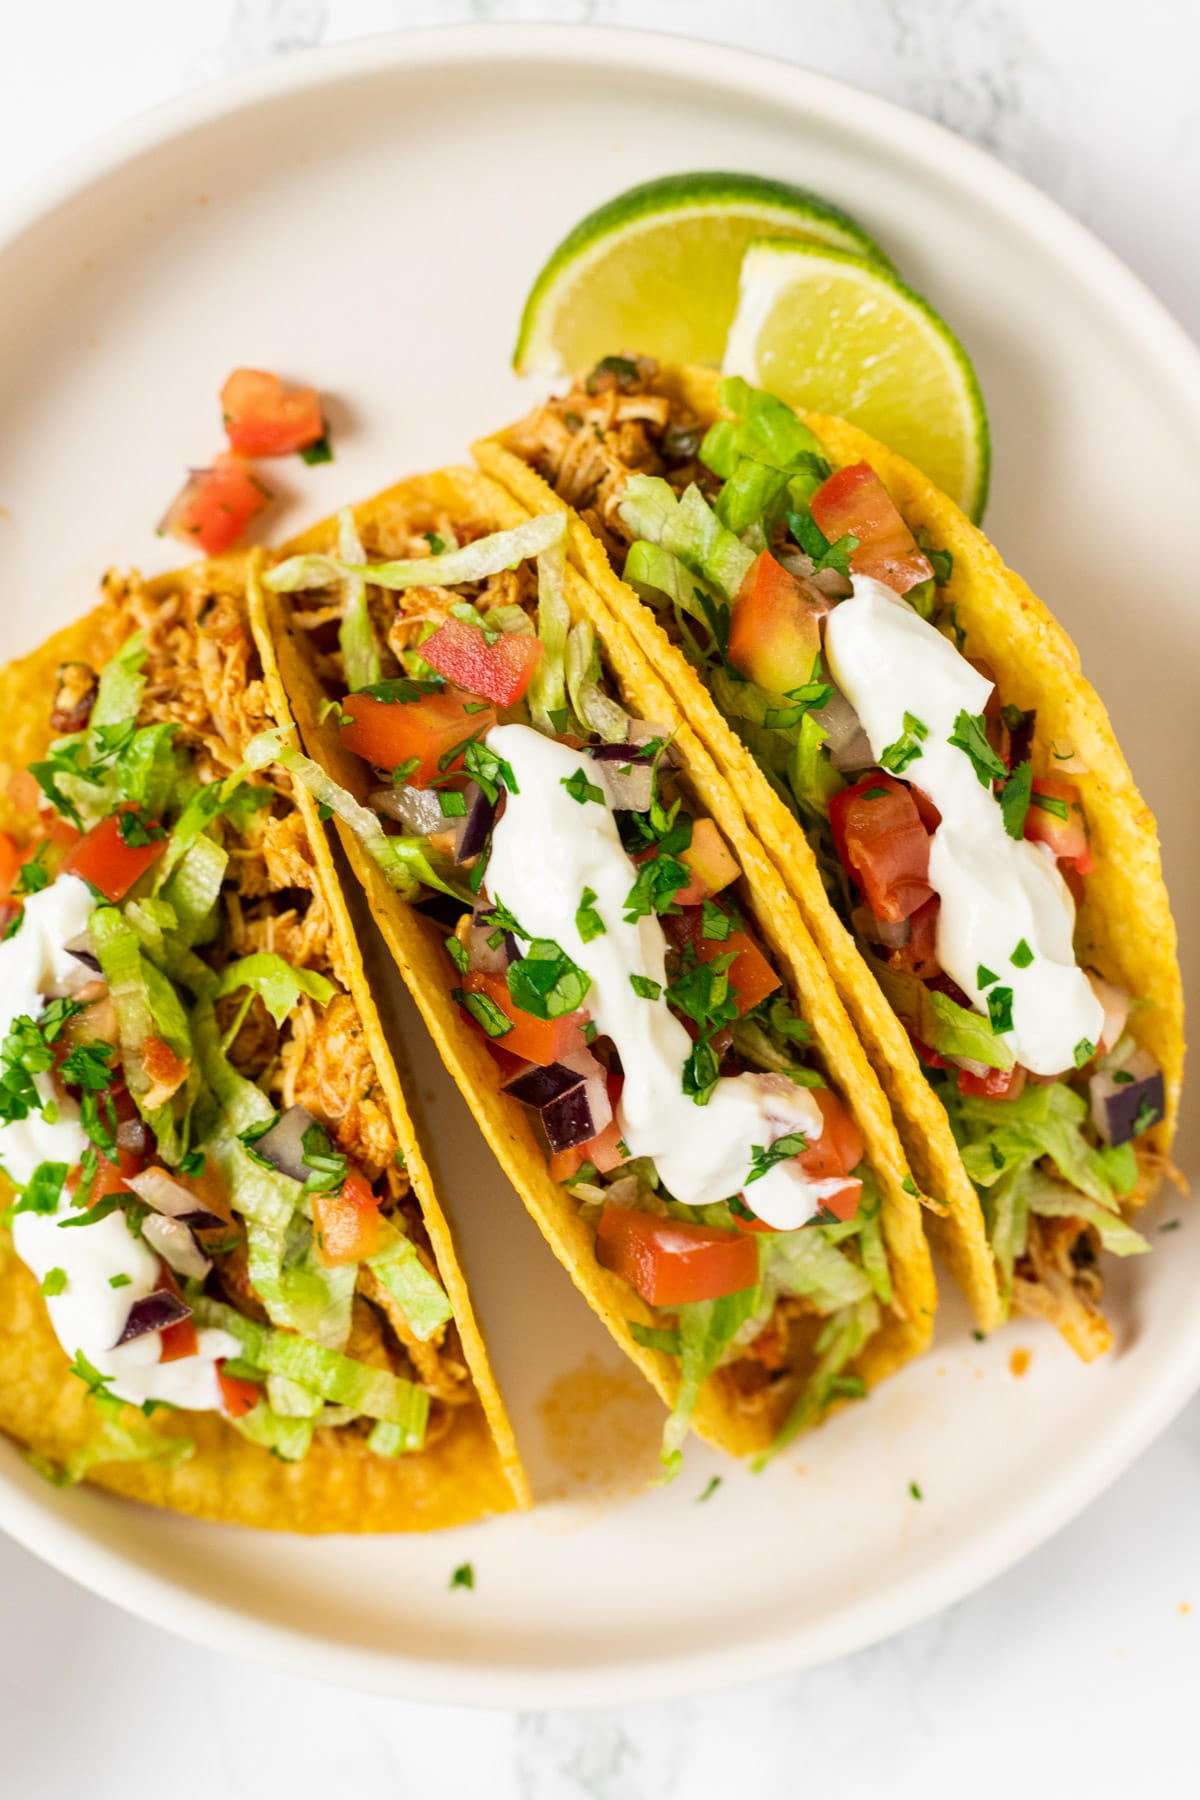 A top down view of three shredded chicken tacos on a plate.